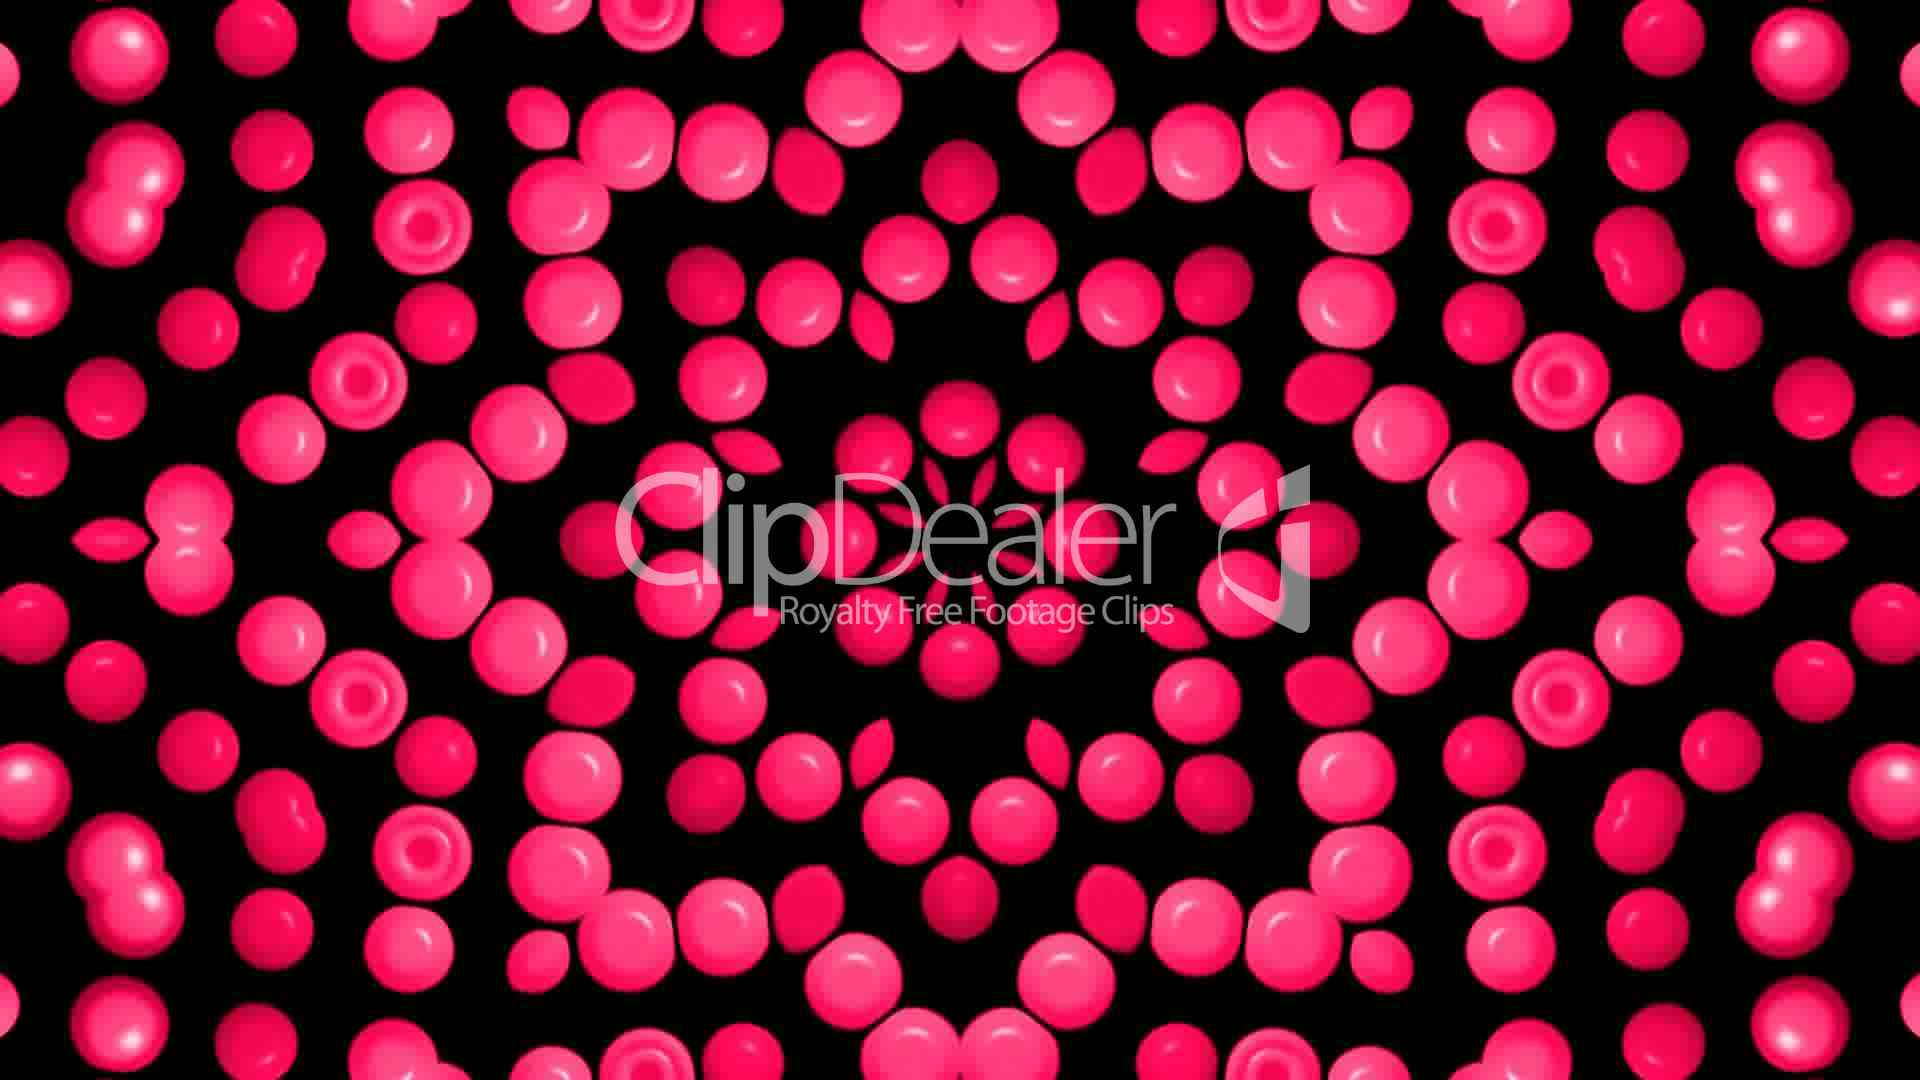 red bubble shaped flower jewelry neon cosmetics pearls gems jade precious stones jade agate Water Waves Clip Art Wave Border Clip Art